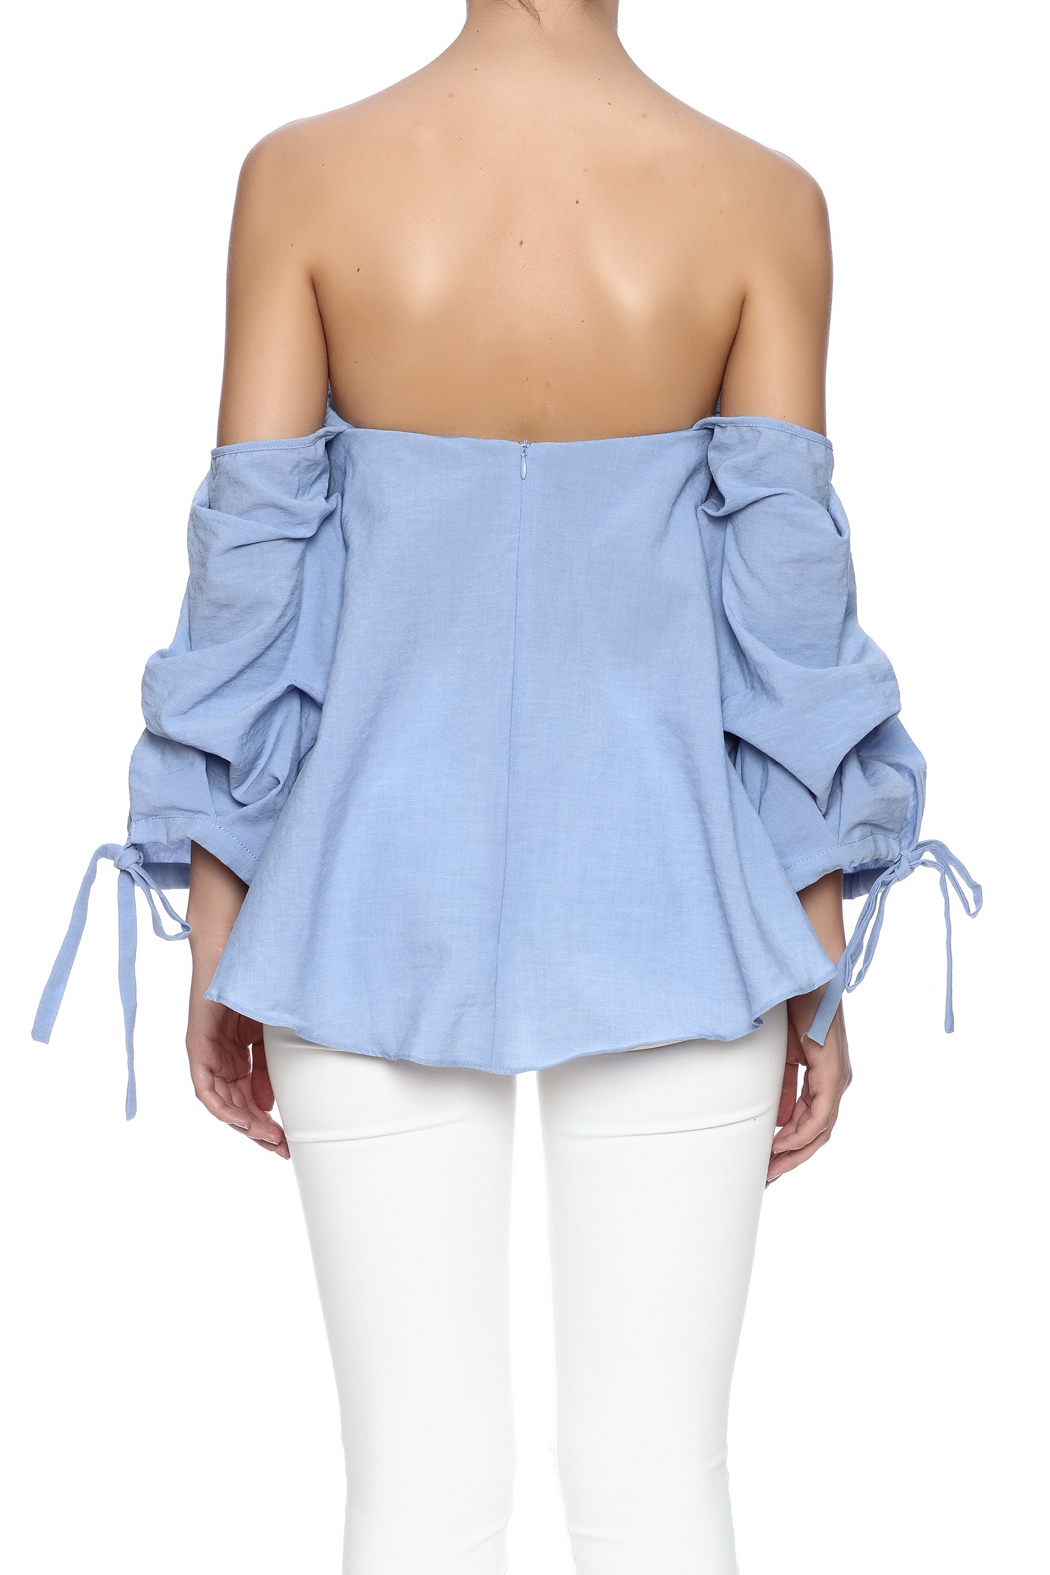 Do & Be Blue Flowy Top - Back Cropped Image